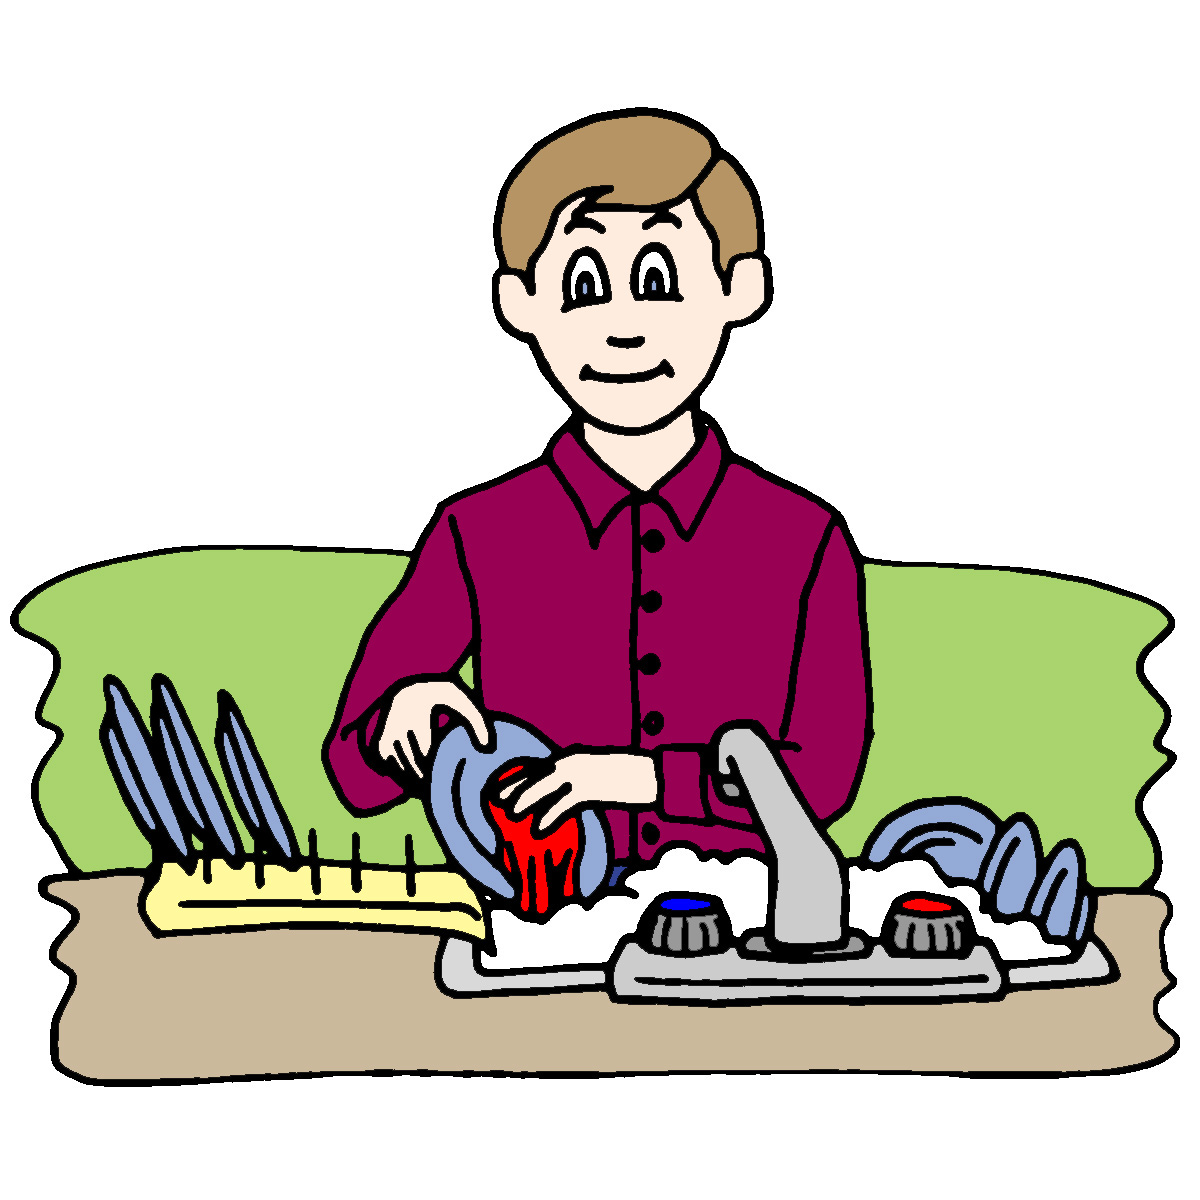 kitchen 20table 20clip 20art  Table Cleaner Clip Art